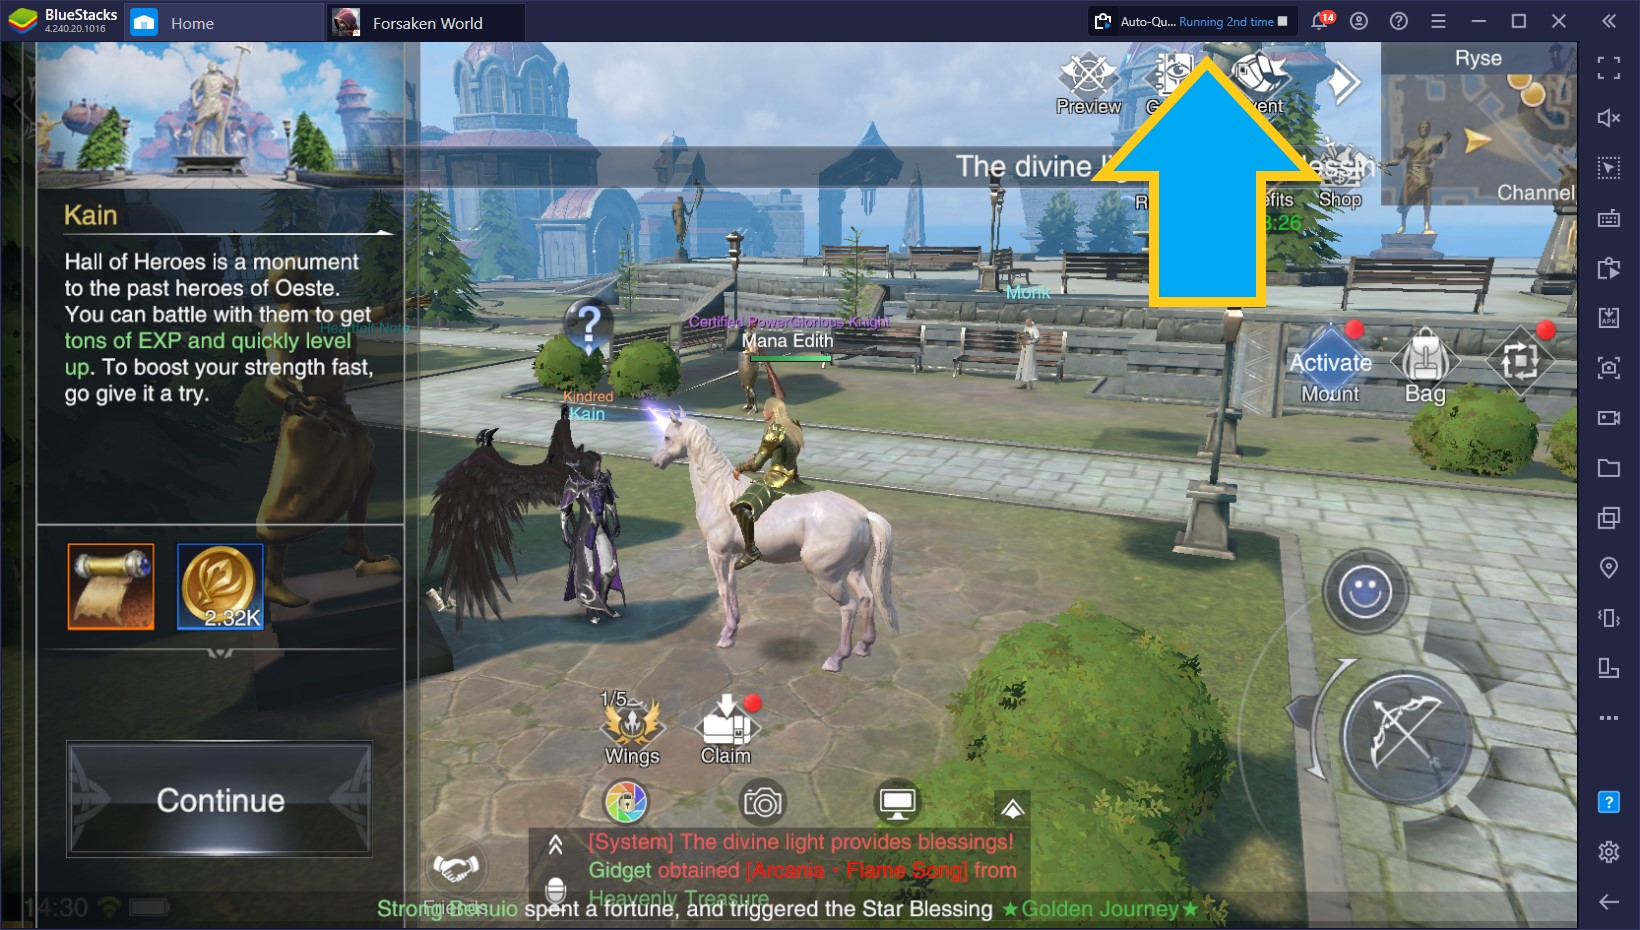 Forsaken World: Gods and Demons on PC – How to Use Our BlueStacks Tools to Improve Your Experience